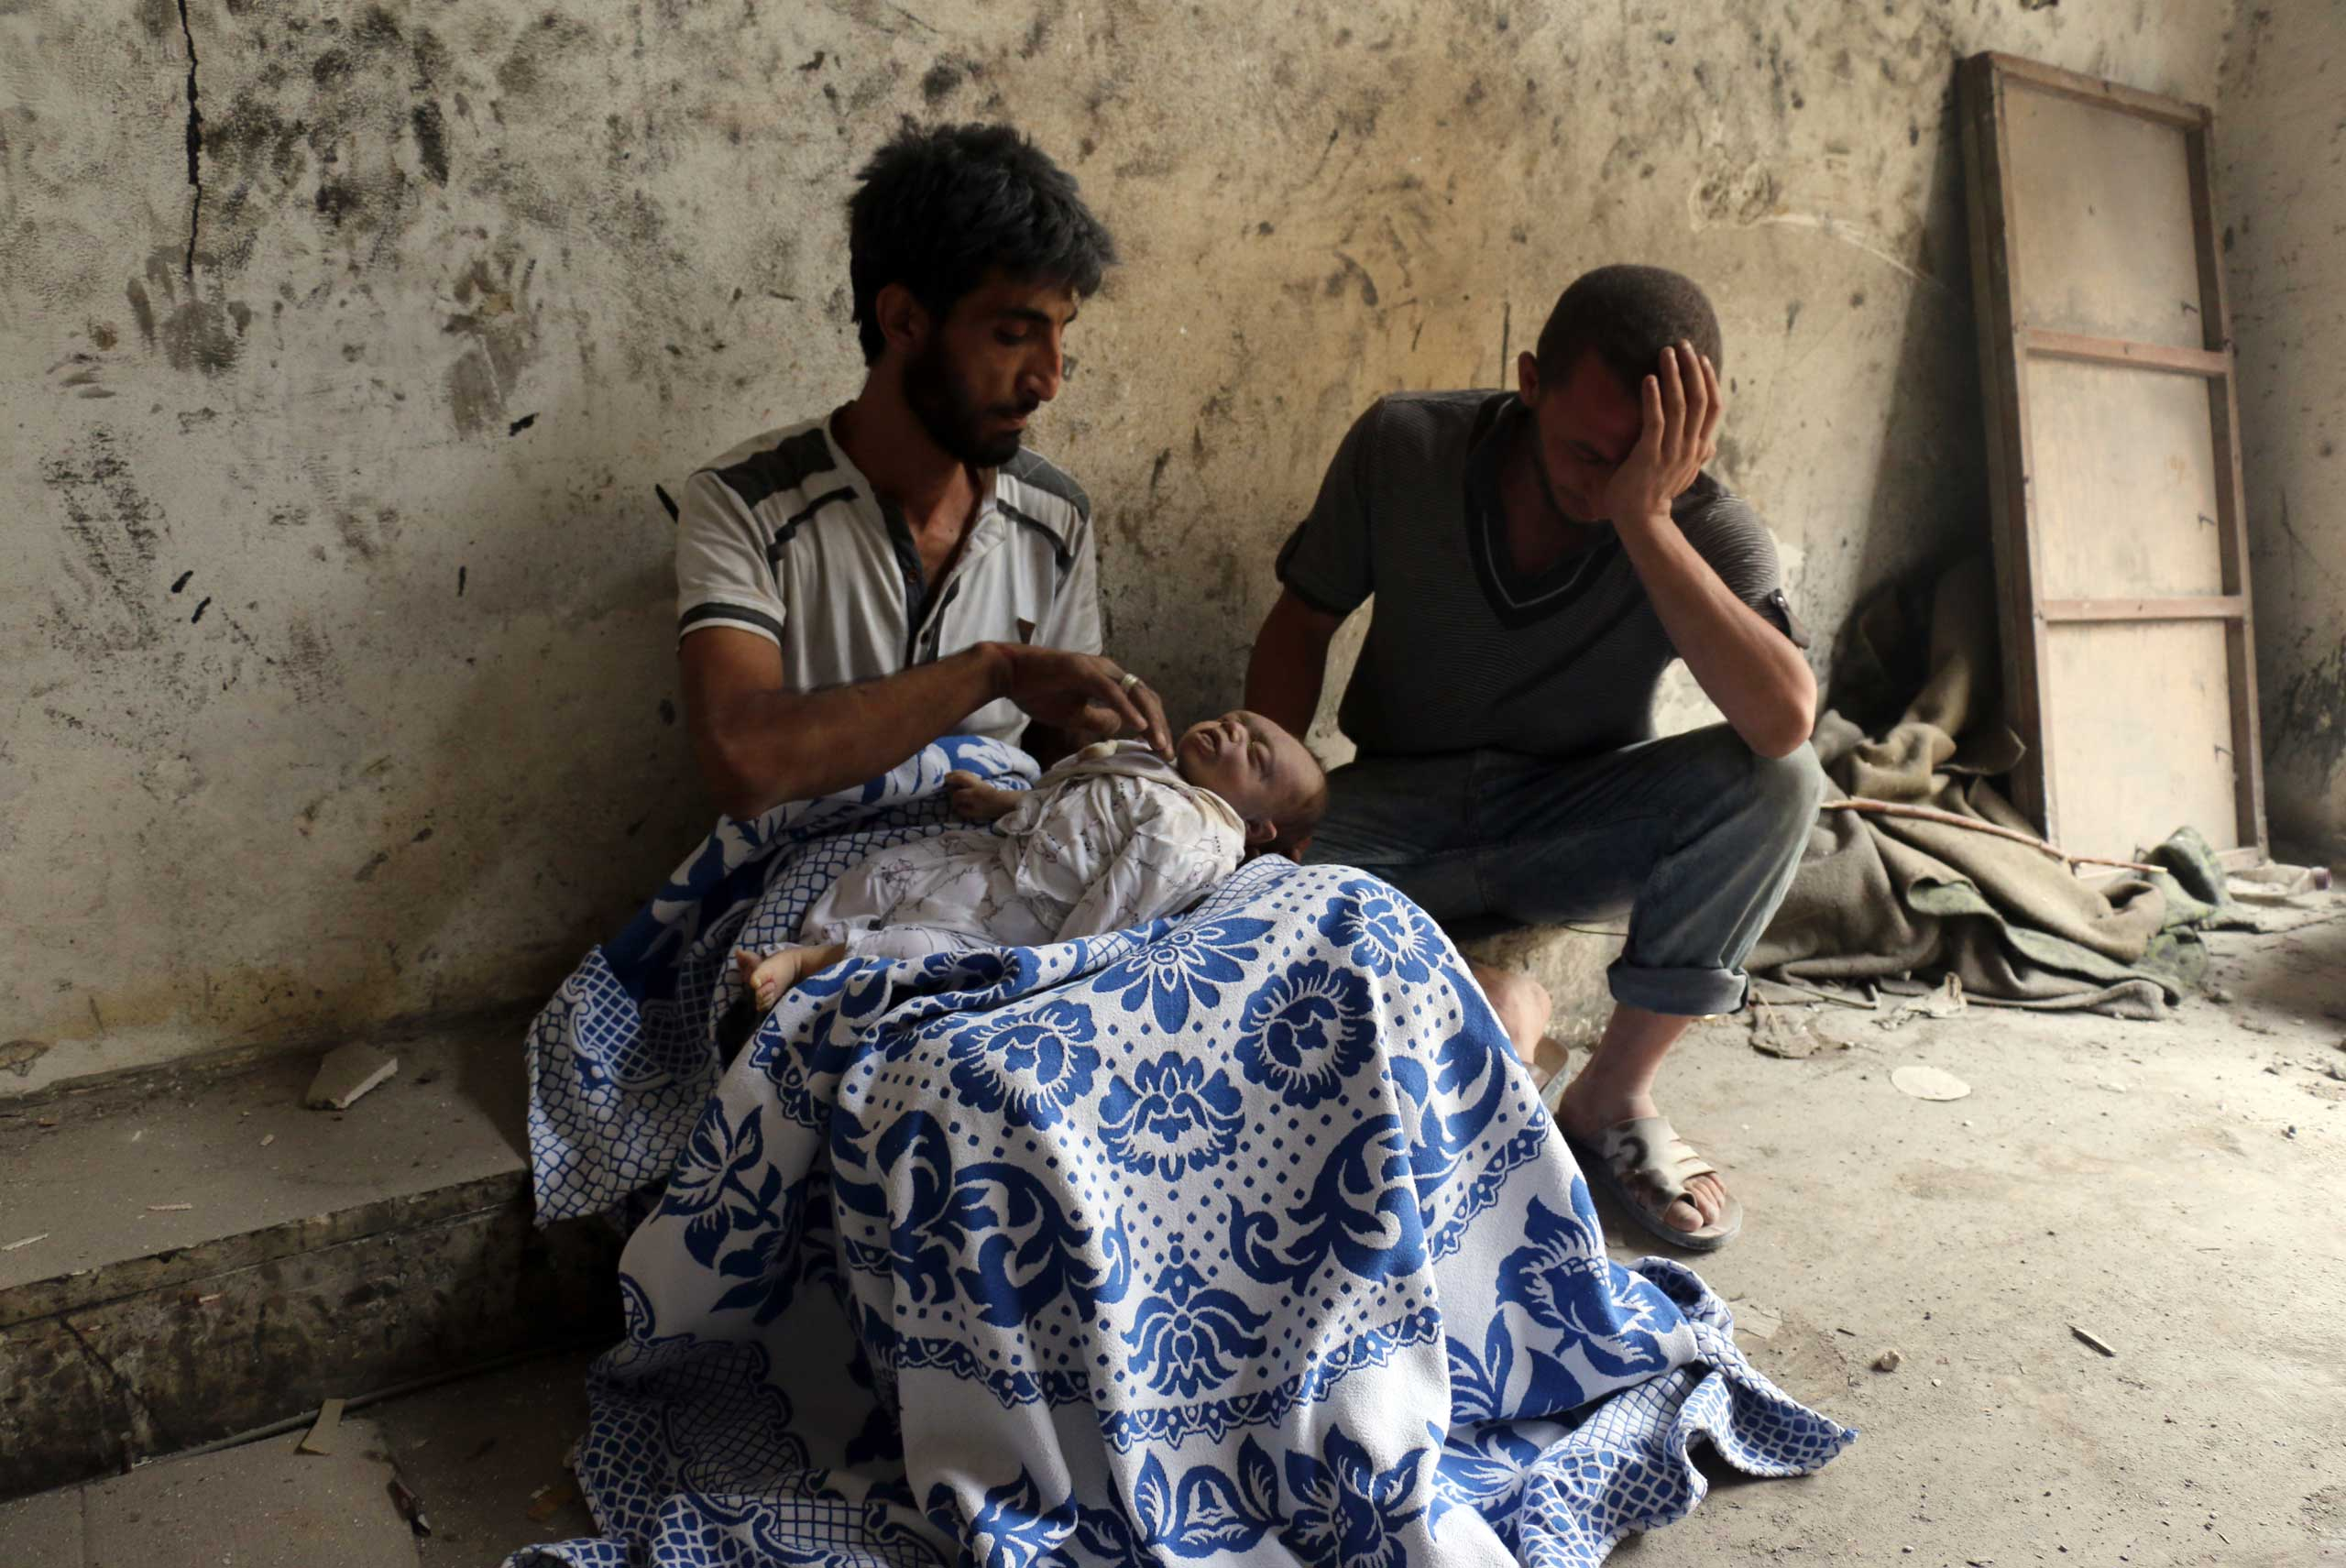 EDITORS NOTE: Graphic content / Syrians mourn over the body of baby following bombardment on the al-Marja neighbourhood of the northern Syrian city of Aleppo on Sept. 23, 2016.